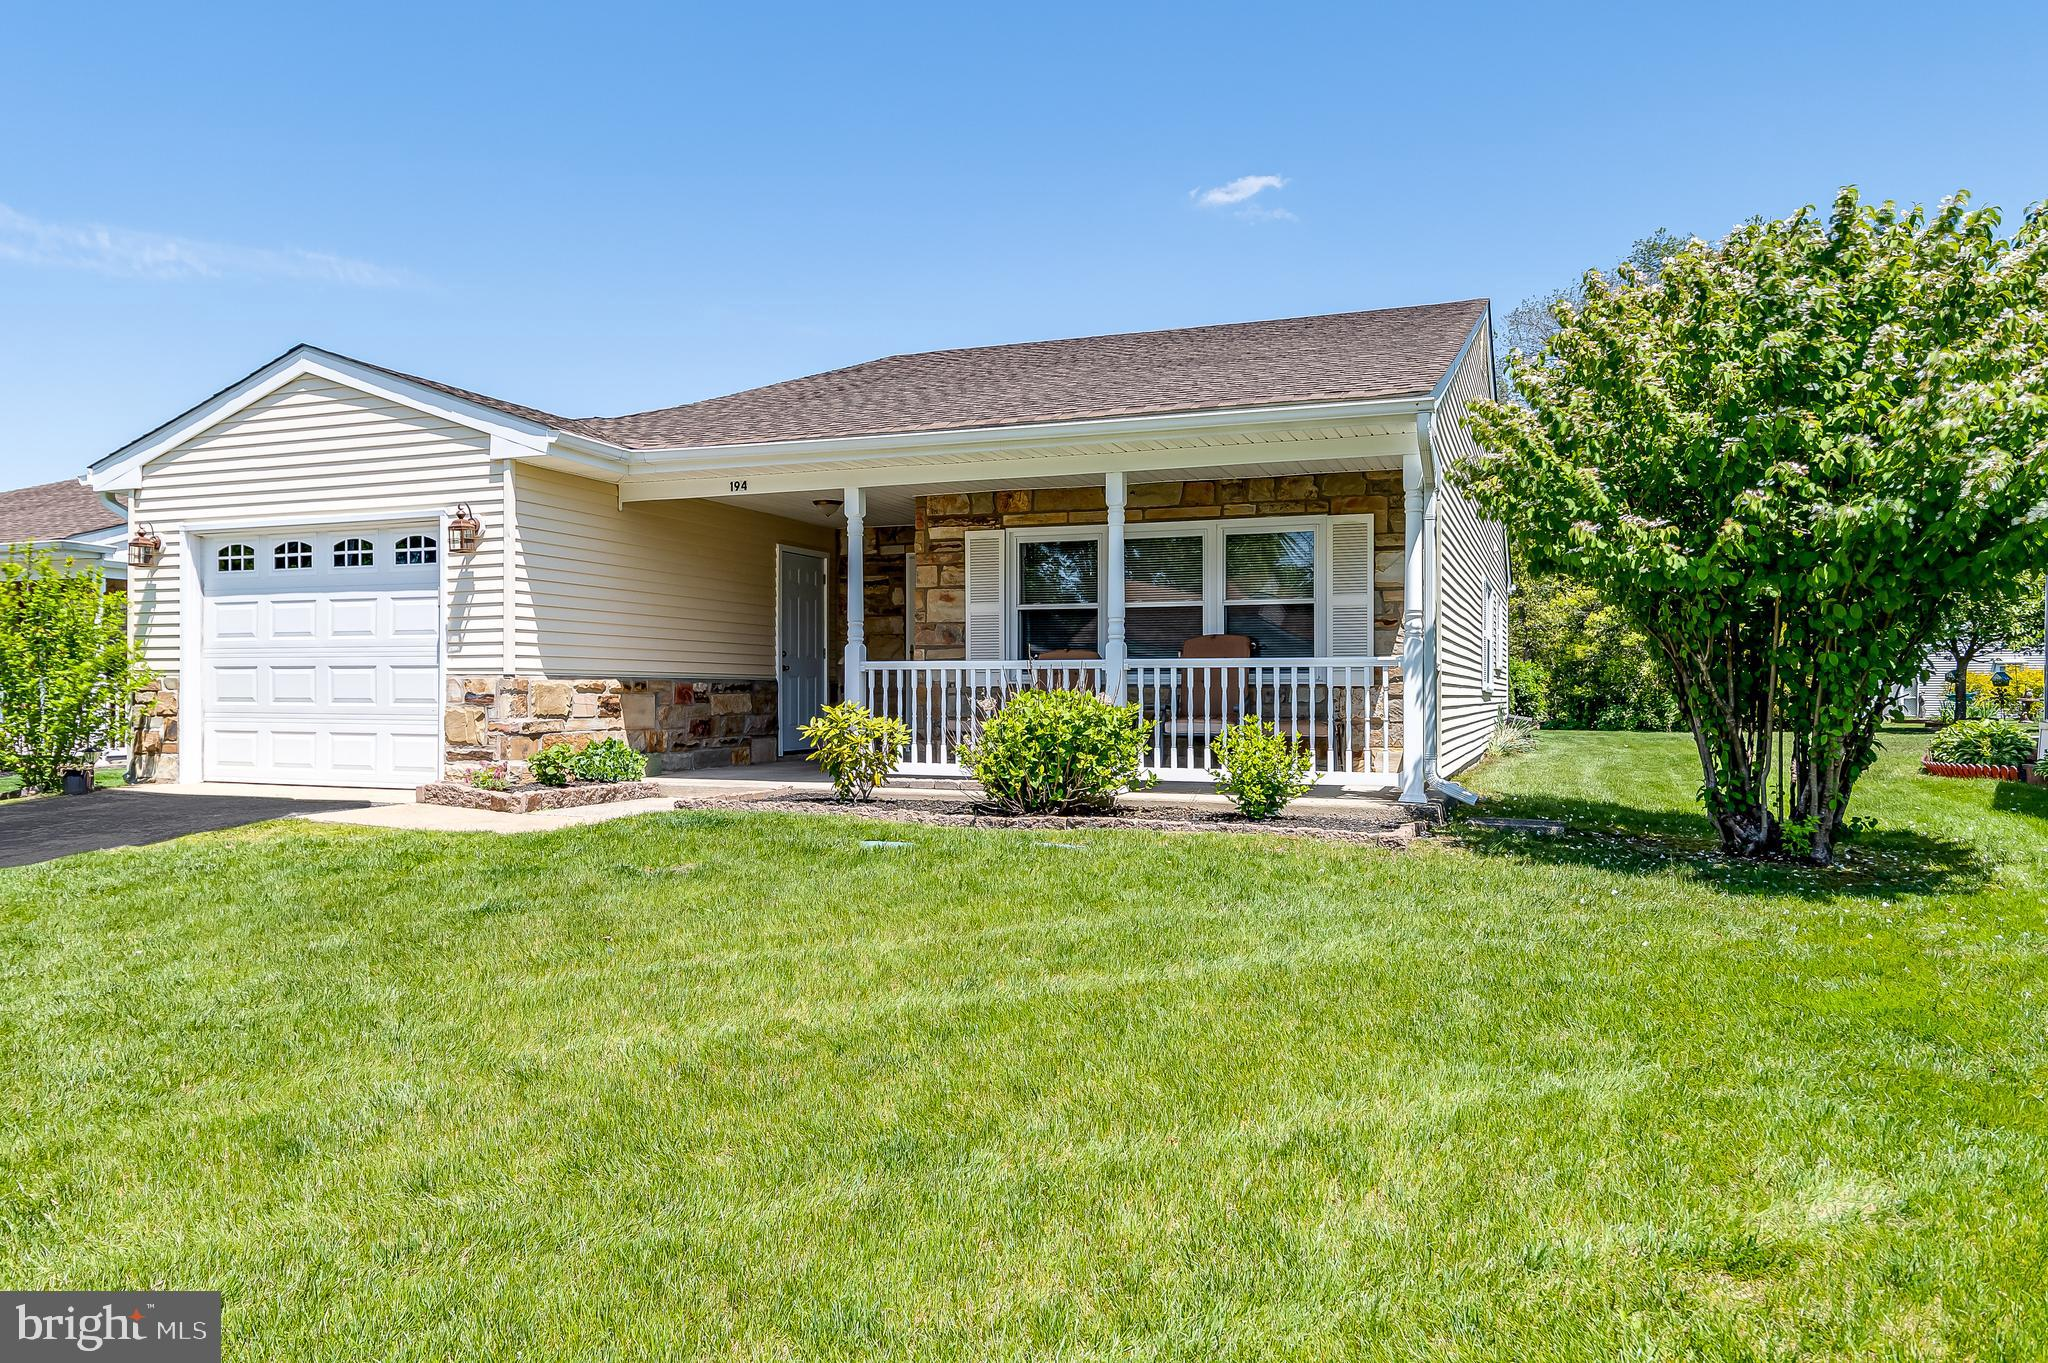 This well-maintained, move-in ready Haverford model has many features and upgrades that make it very desirable. There is a newer Dimensional Shingle Roof, that has a 50-year transferable warranty, a newer 50 Gal Water Heater, and a York AC system.    The property has a Rain Bird Sprinkler System.  All mechanical systems have been maintained annually. The home has been inspected annually for wood-destroying insects and has a clear termite certification. How's that for starters??  Add to that, the covered porch with white railings and the Pella storm door that has mini blinds built in so you can adjust the light exposure into the home. The large living room offers flexibility for entertaining, especially with a half wall dividing the living room and dining room. Crown molding in both rooms and the hall complements the space. There is laminate flooring in the foyer, living room, dining room, hallway and kitchen.  The expanded eat-in kitchen can easily accommodate a large table, or an island, if you prefer. The kitchen has warm honey cabinets with brushed nickel hardware that matches the stainless steel appliances. The granite countertop has an upgraded leather finish that is stunning to the eye and touch. There is a stainless steel double sink and a Moen touchless faucet. A built-in pantry and shelving also add to the functionality of this room. The back door, also Pella with mini blinds, leads from the kitchen to a concrete patio that has an electronic, remote-controlled, Sunesta Awning.  In addition to providing relief from the sun when sitting on the patio, it also reduces the heat from the sun coming into the kitchen. The Primary Bedroom has a walk-in closet and new carpeting. The attached full bath has an enlarged walk-in shower for ease getting in and out of the shower. The Second Bedroom, which can be used as a guest room, an office or a craft room has new carpeting and two wide floor-to-ceiling closets which provide lots of storage. The leather-finish granite t